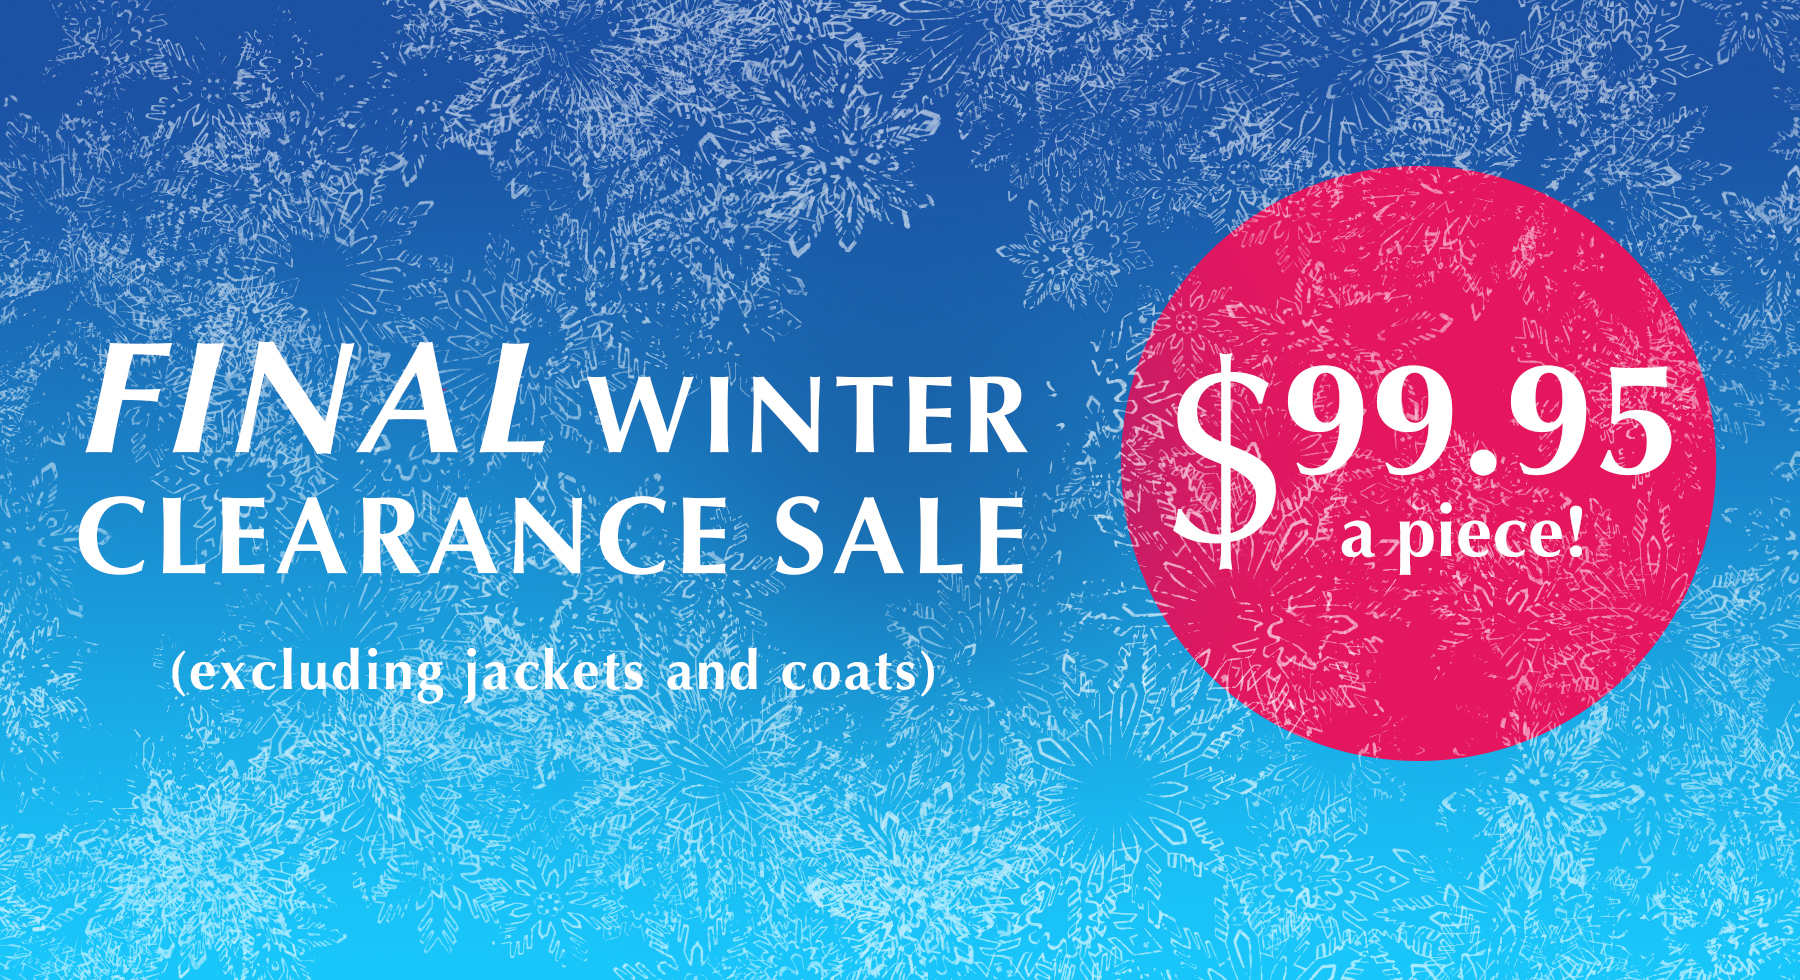 winter clothing sale auckland